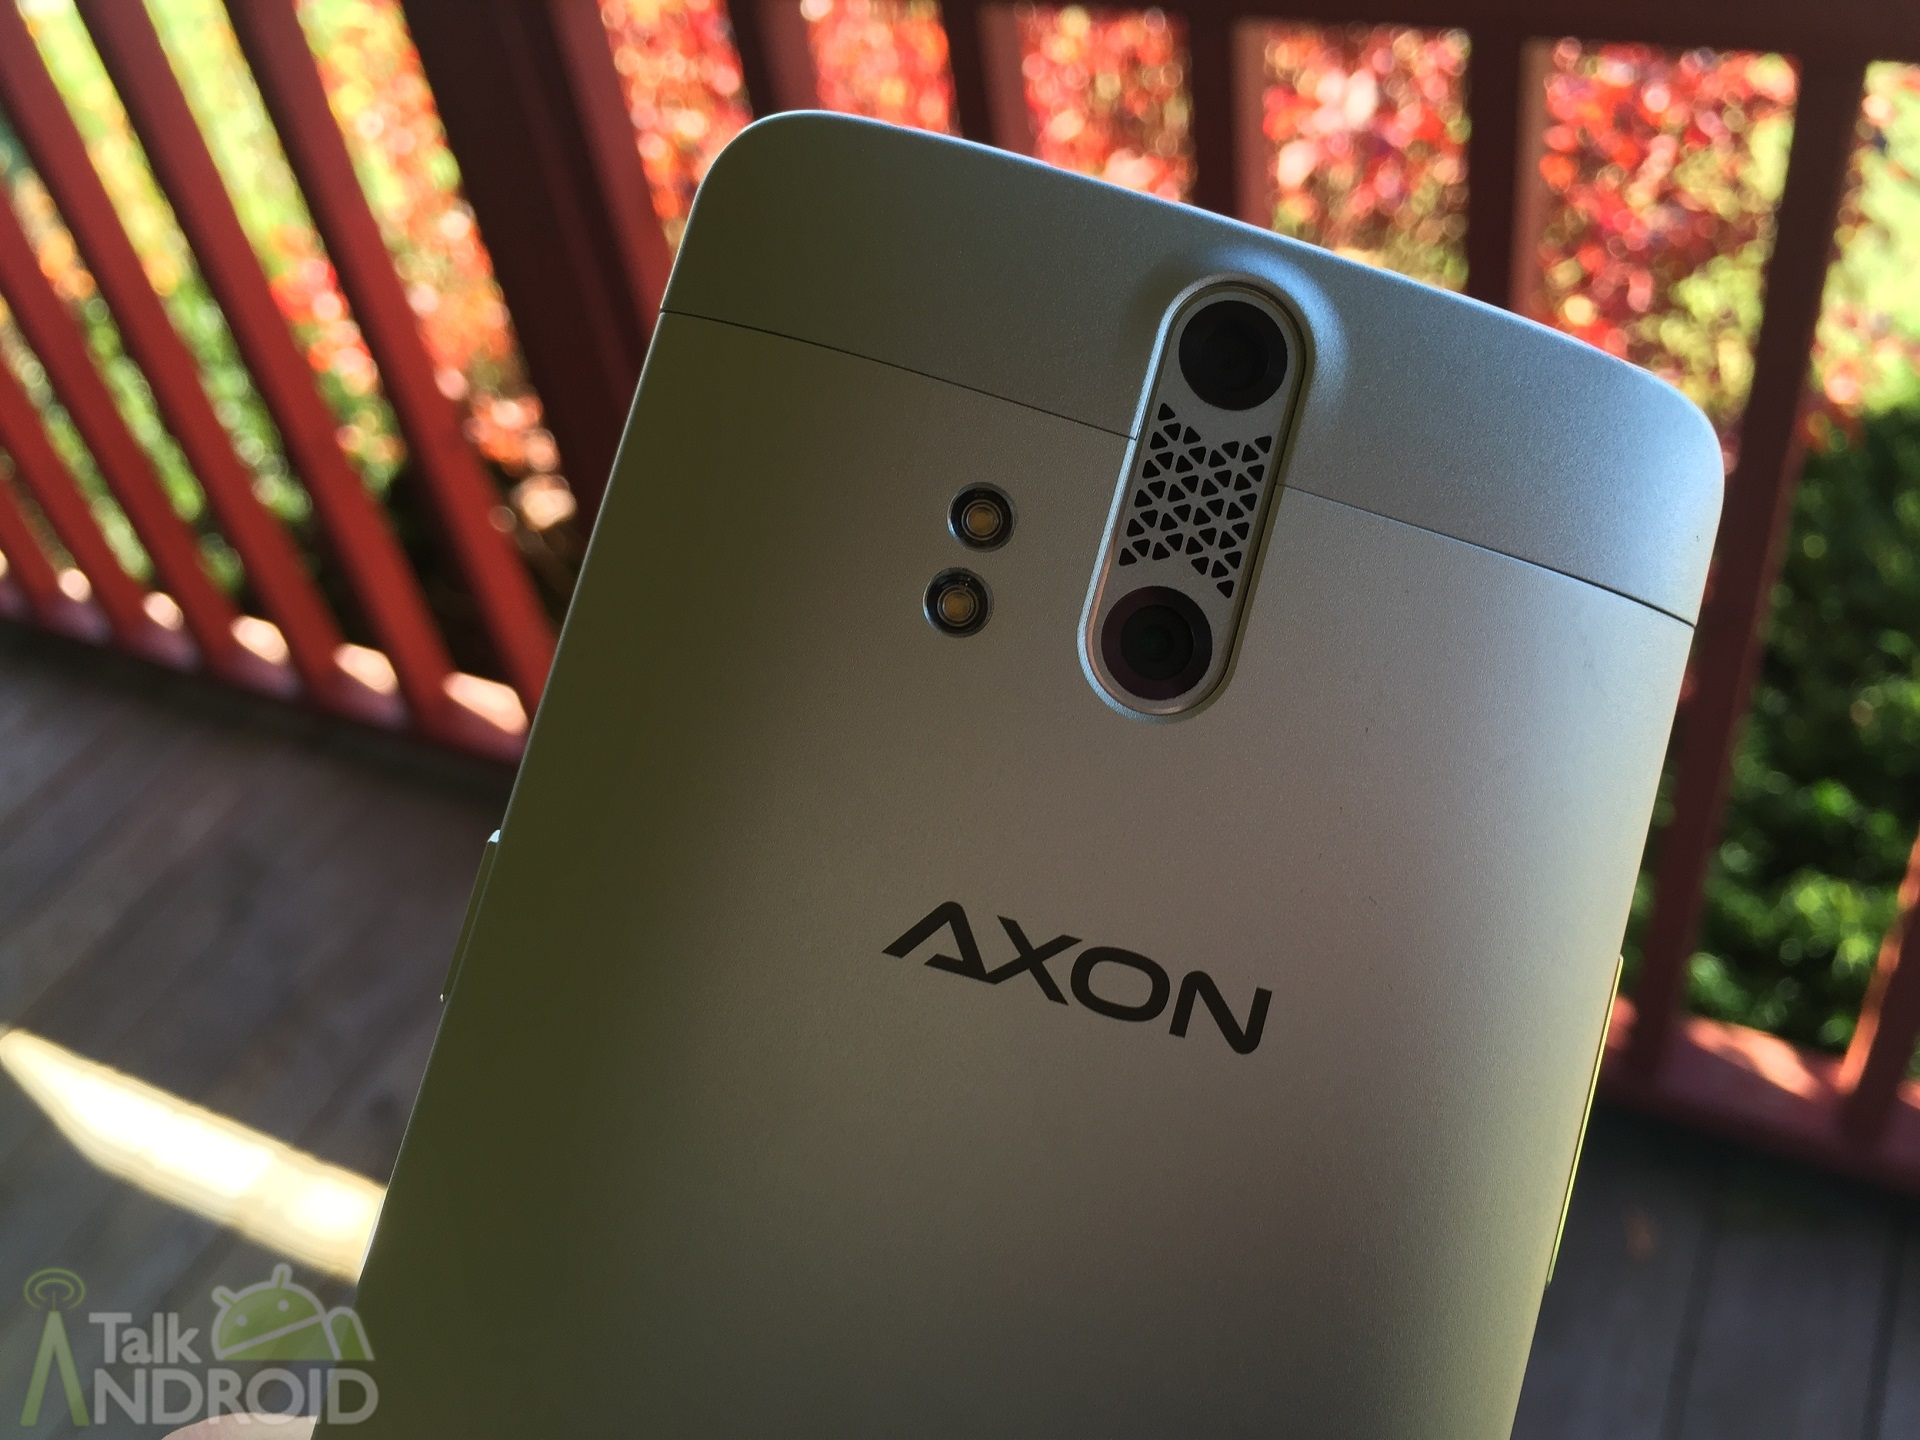 ZTE Axon and Axon Pro Update as a Camera App Renewed